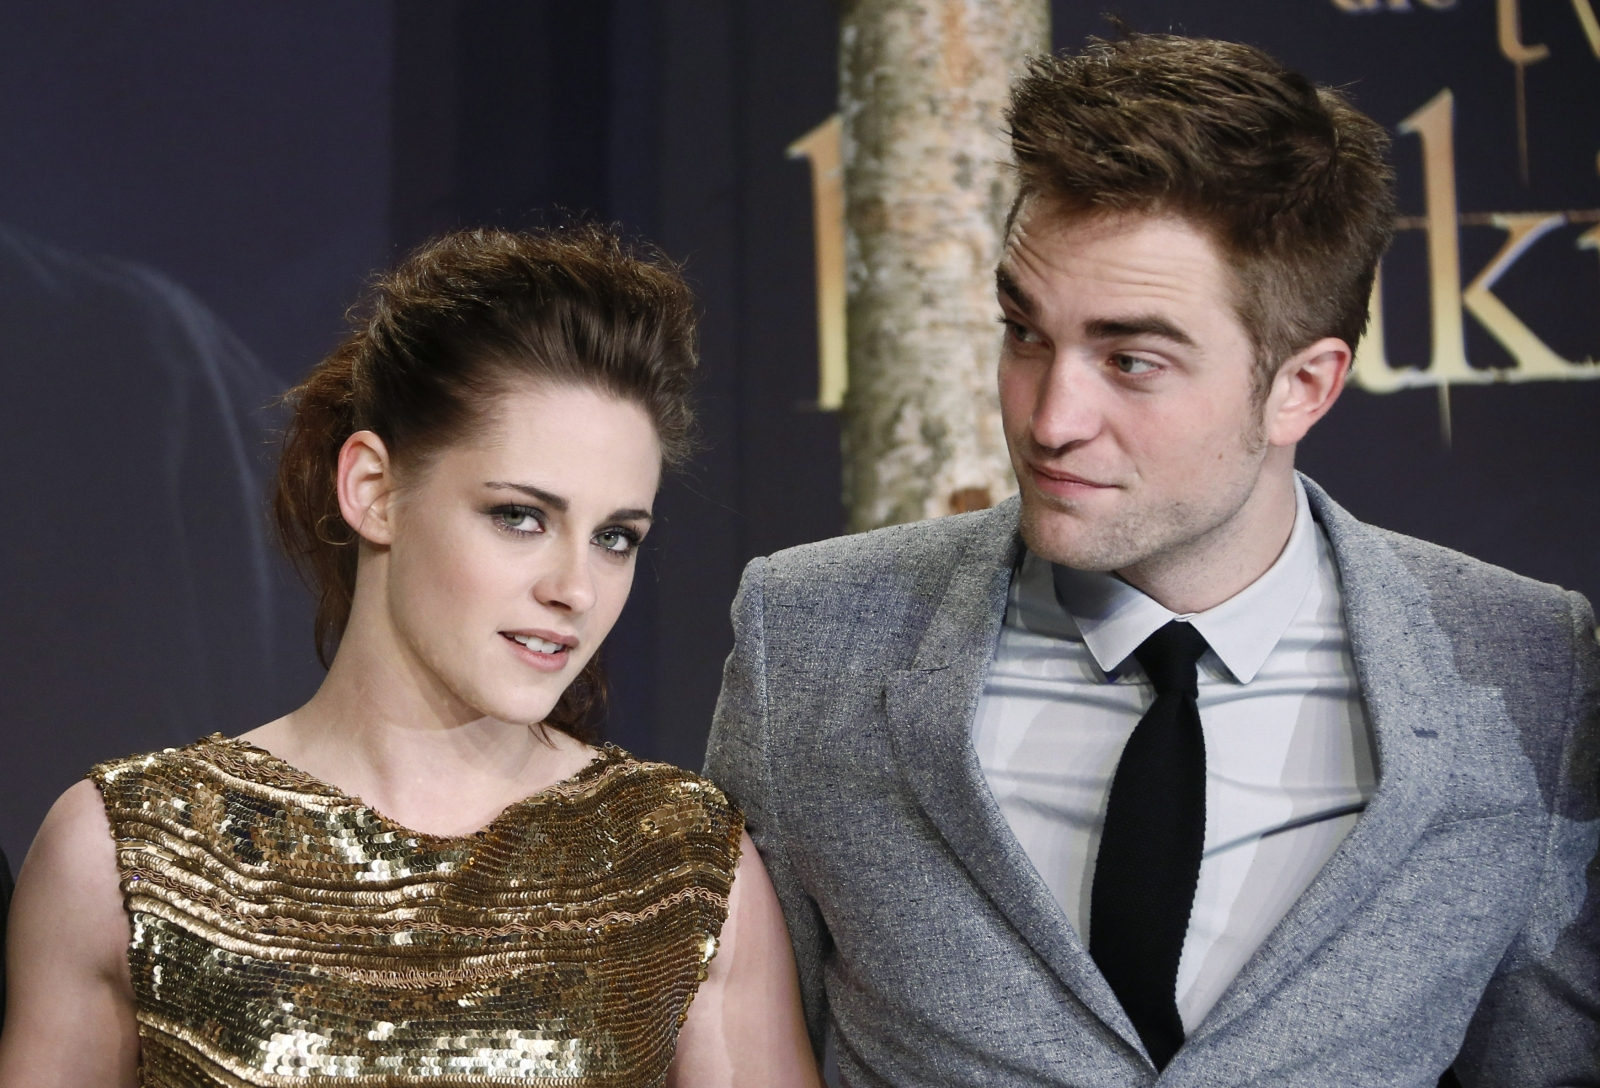 Kristen Stewart Robert Pattinson Who Are They Dating Now - EconoTimes